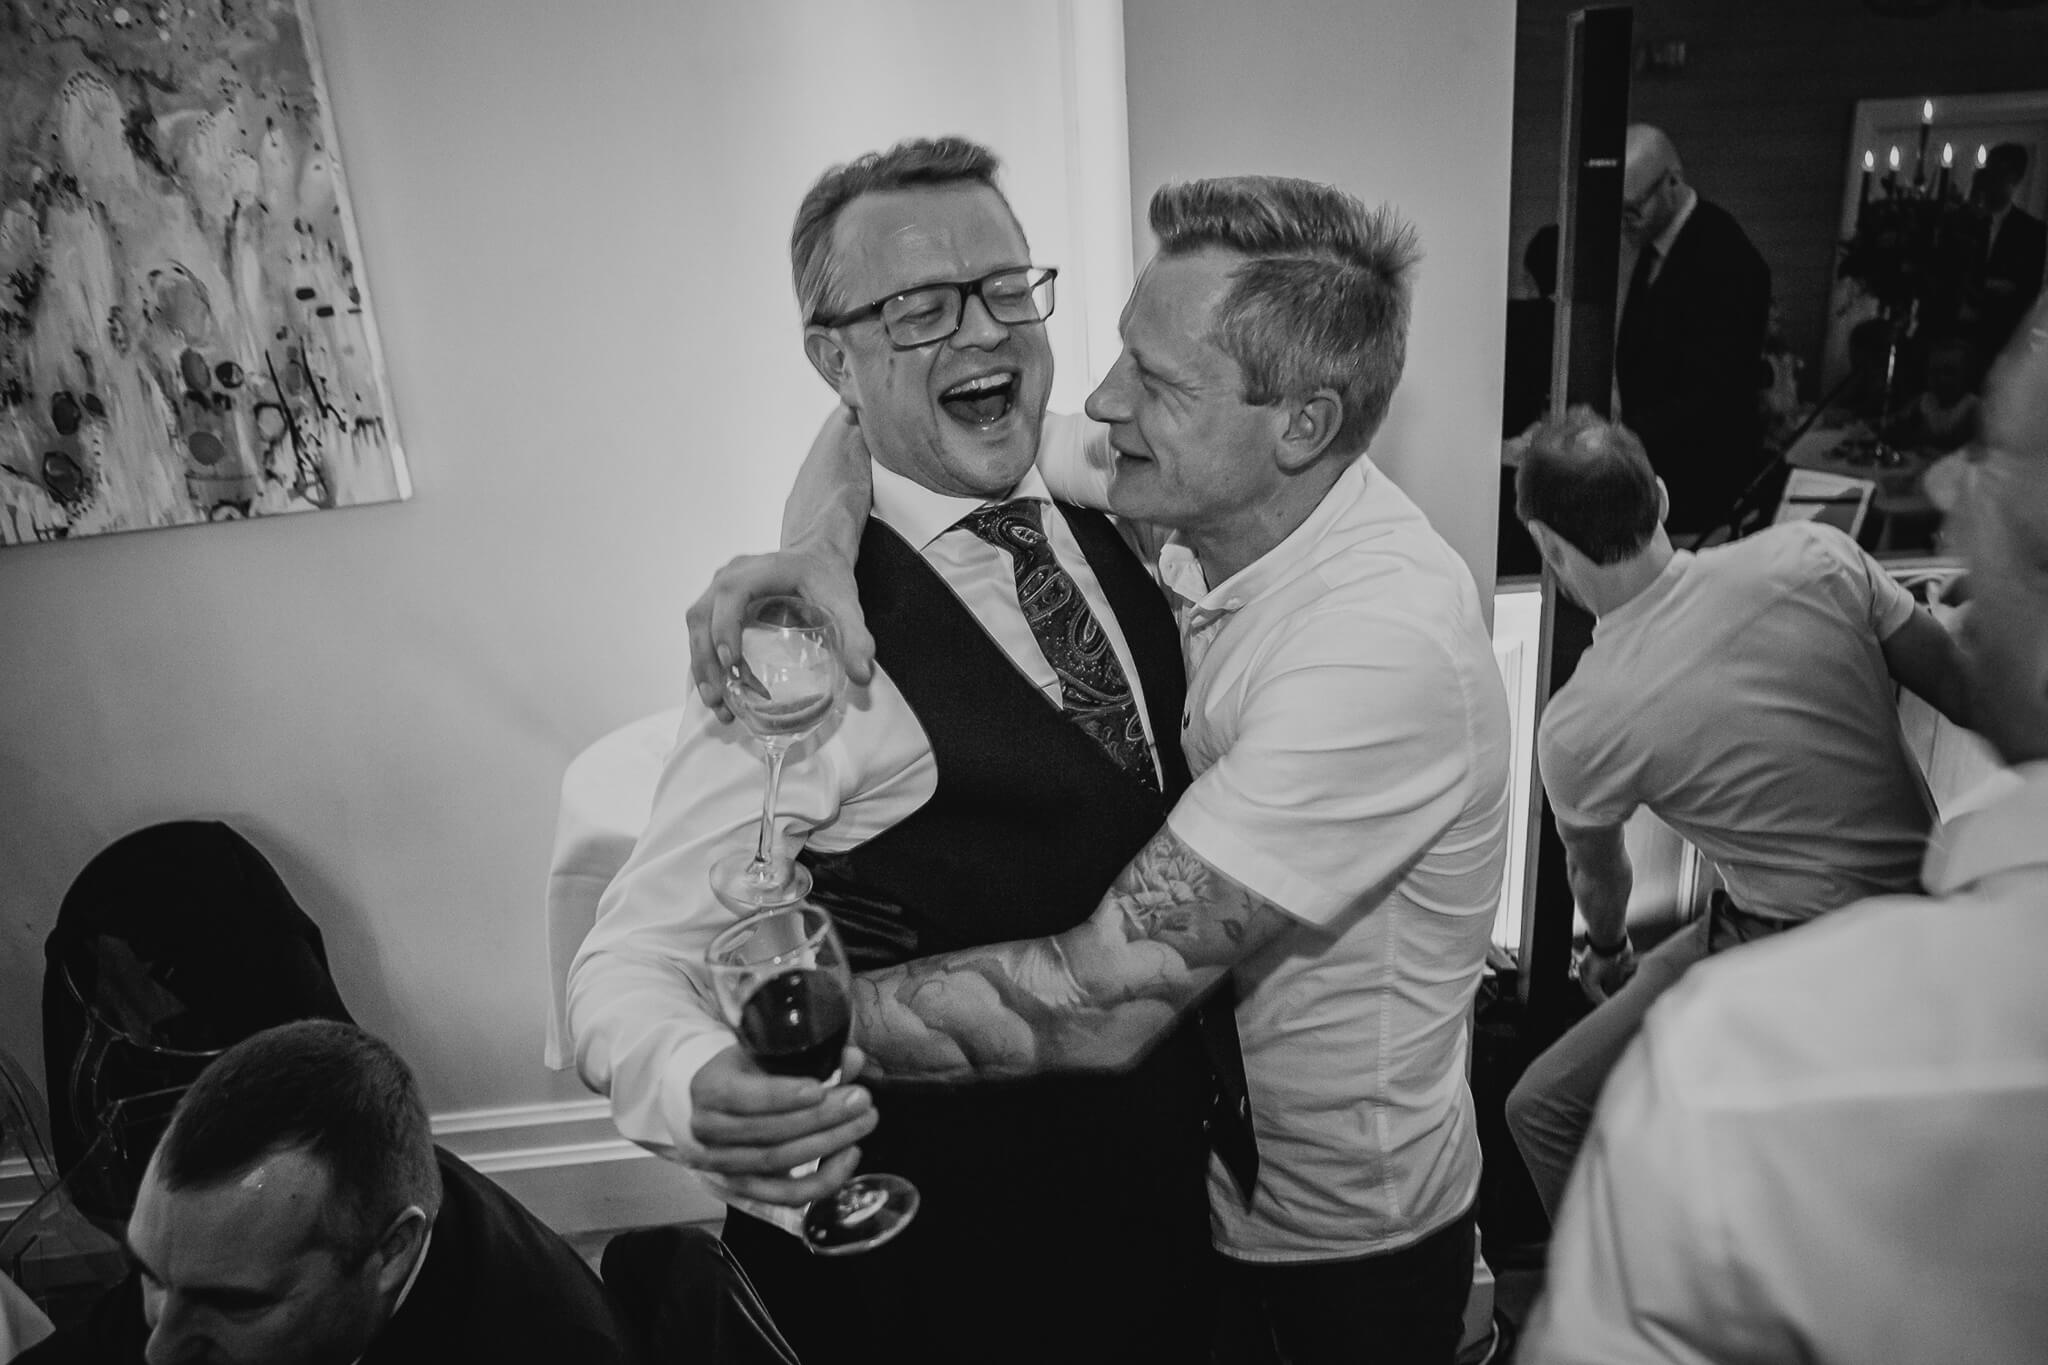 groom-guest-st-johns-litchfield-wedding-stanbury-photography